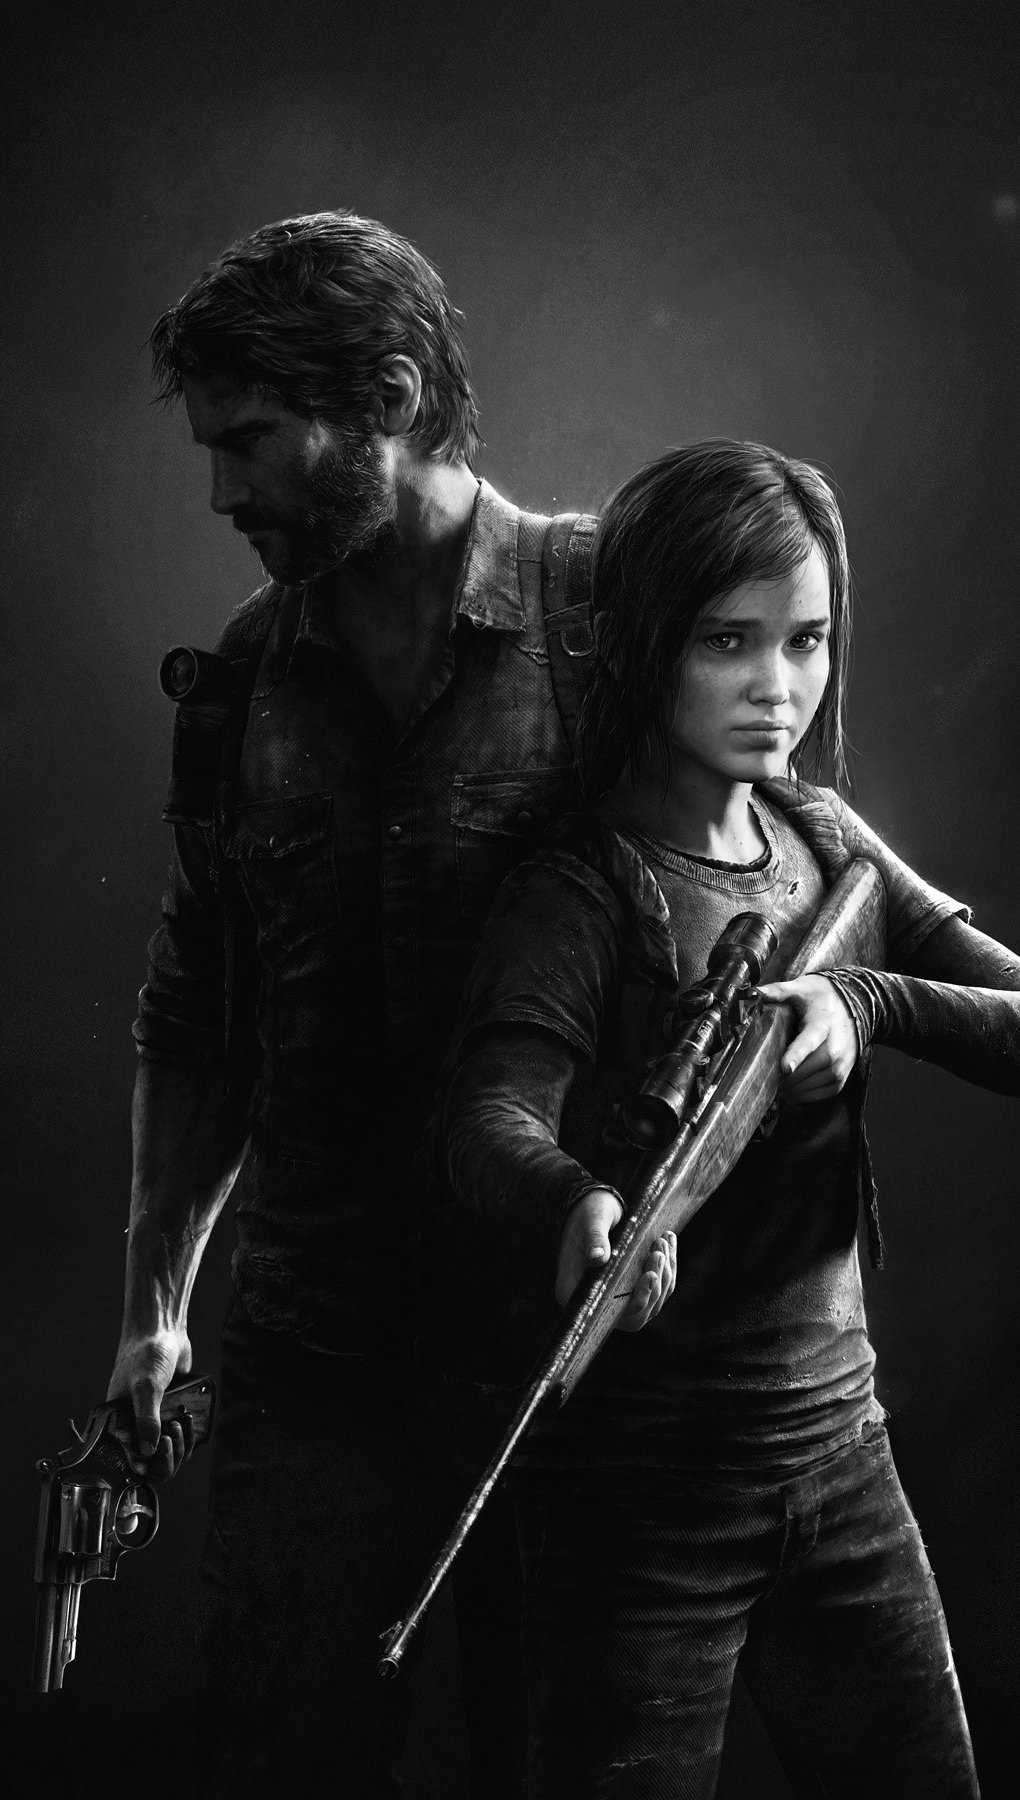 Fondos de pantalla The last of us remasterizado Vertical